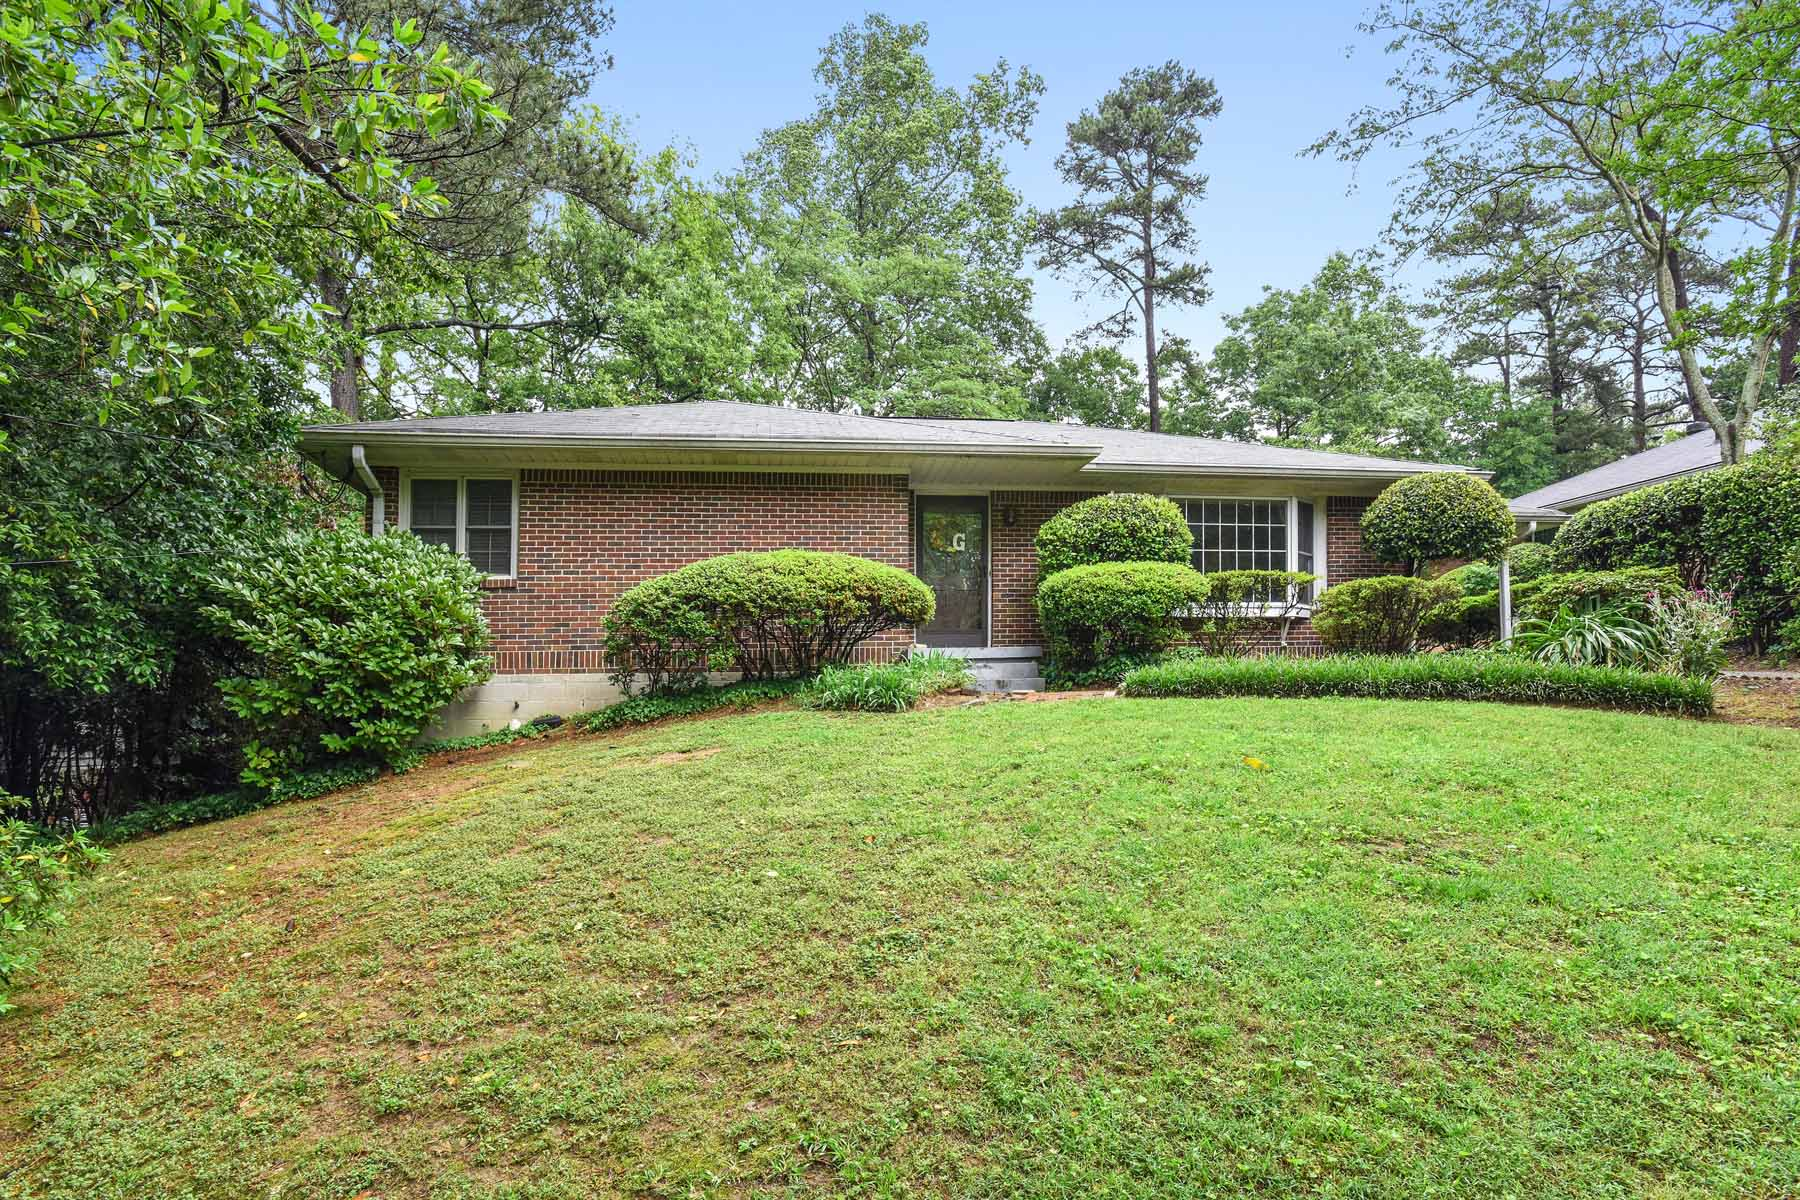 Single Family Home for Rent at WONDERFUL HOME ON A QUIET STREET JUST OFF BRIARCLIFF RD. 1232 Carol Lane NE Atlanta, Georgia 30306 United States